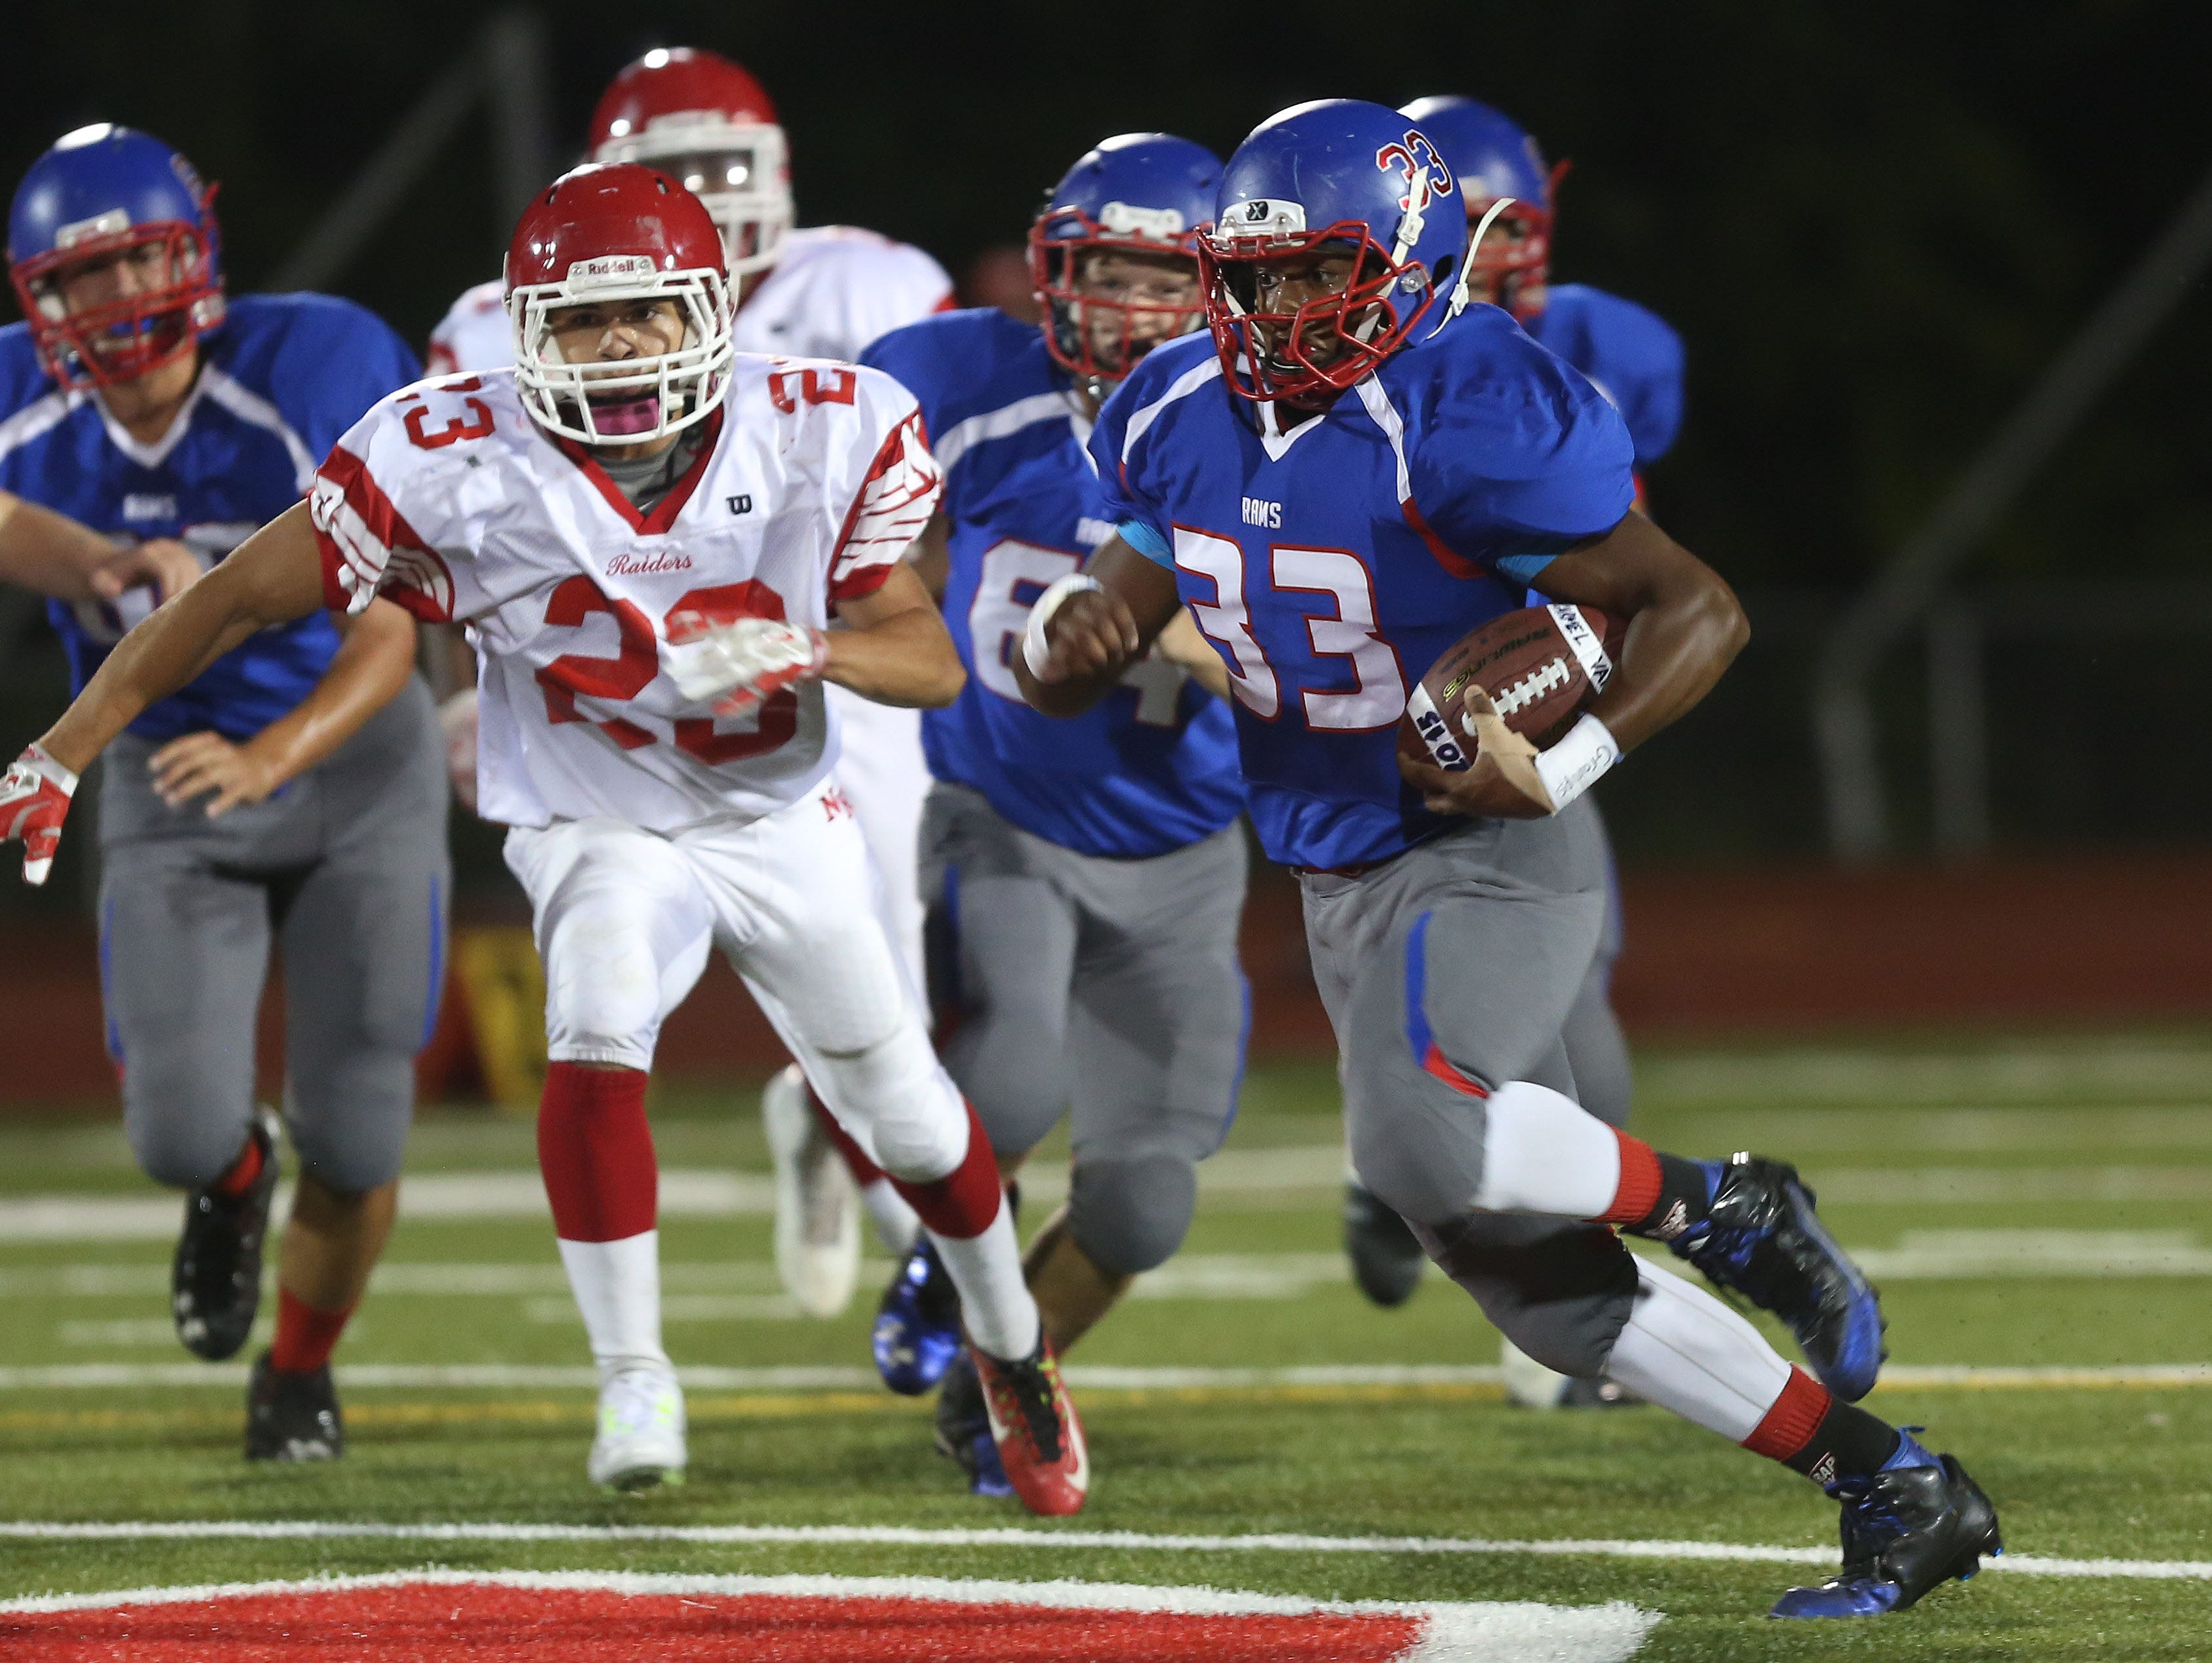 Carmel's John Morris III (33) looks for some running room in the North Rockland defense during football action at Carmel High School Sept. 25, 2015